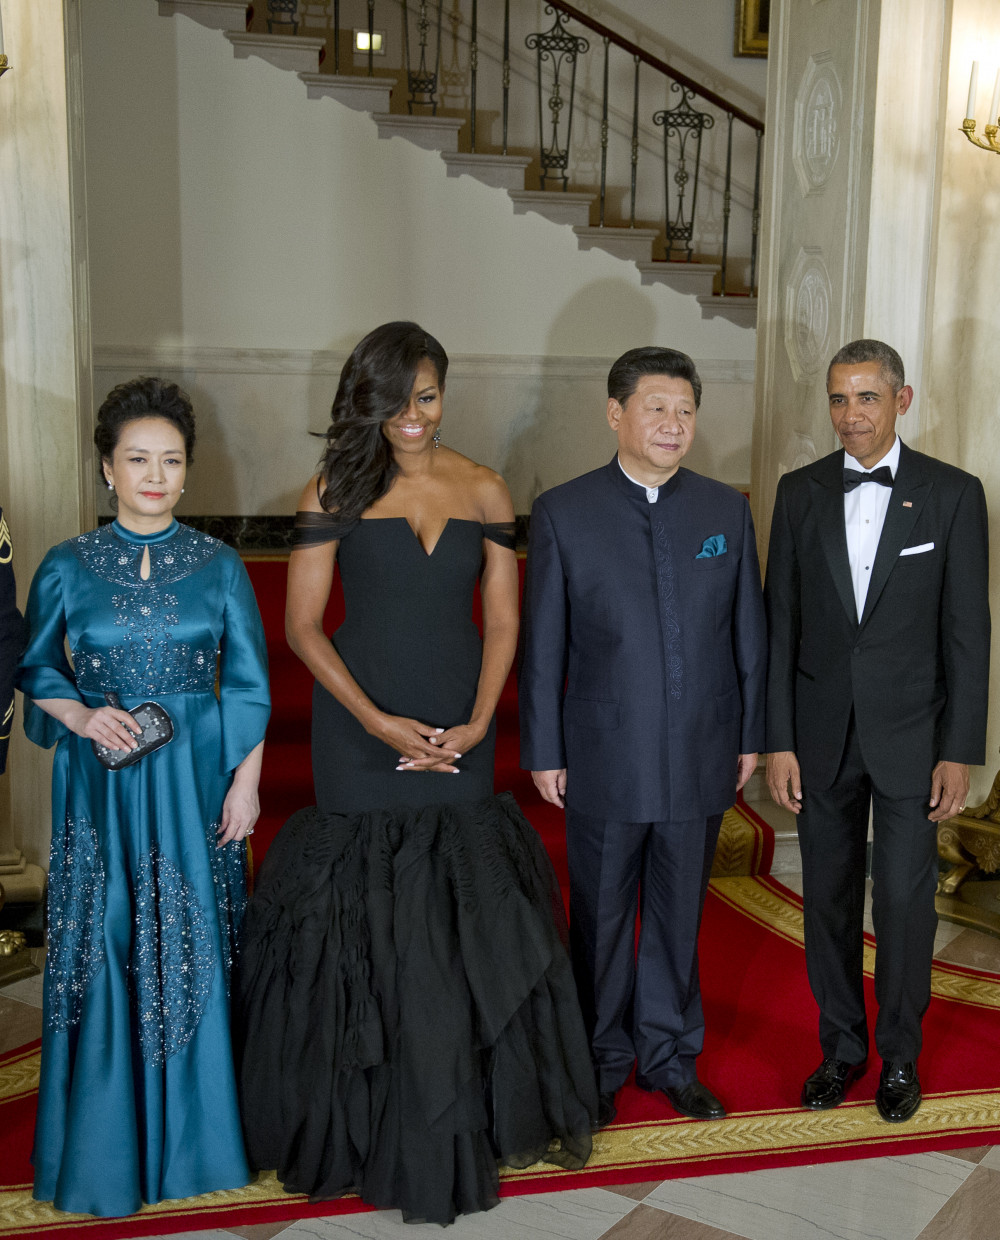 WASHINGTON, DC - SEPTEMBER 25: (L-R) Chinese President Xi Jinping's wife Peng Liyuan, first lady Michelle Obama, Chinese President Xi Jinping and President Barack Obama pose for a formal photo prior to a state dinner at the White House September 25, 2015 in Washington, DC. The two leaders will tackle a range of issues including regional tensions in Asia and cyber crimes. (Photo by Ron Sachs-Pool/Getty Images)